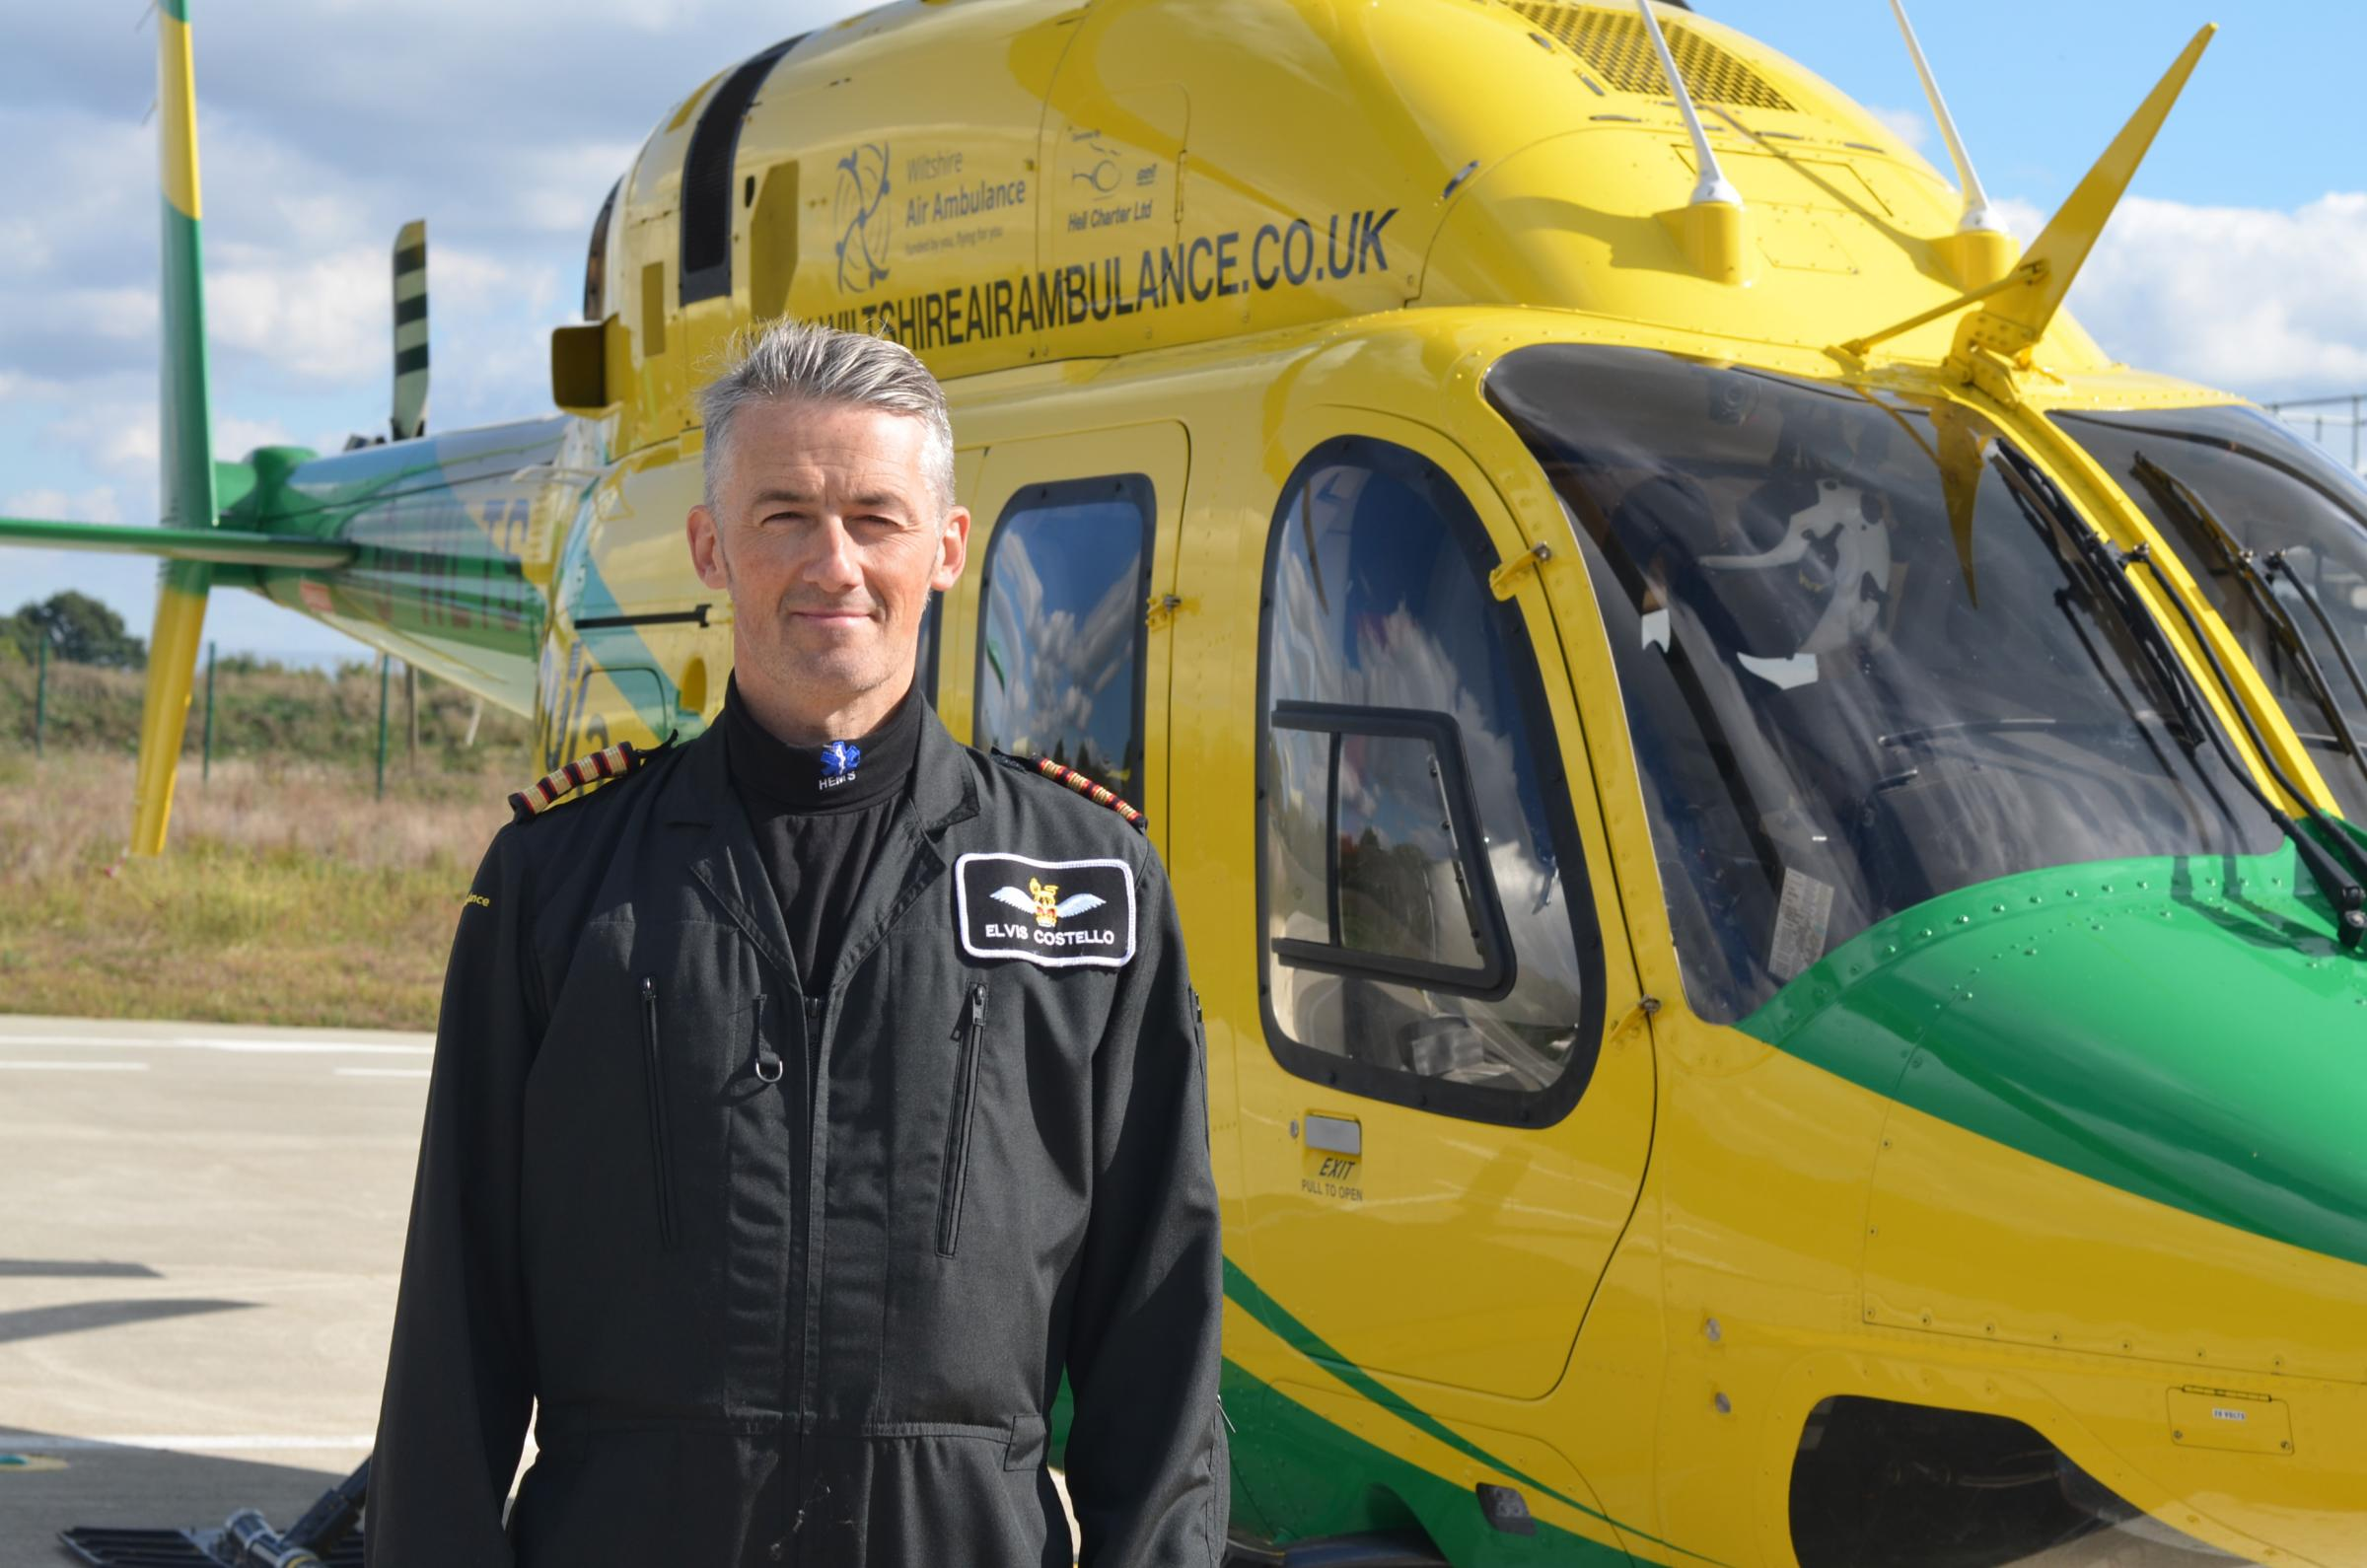 David ' Elvis' Costello, the Wiltshire Air Ambulance's newest crew member